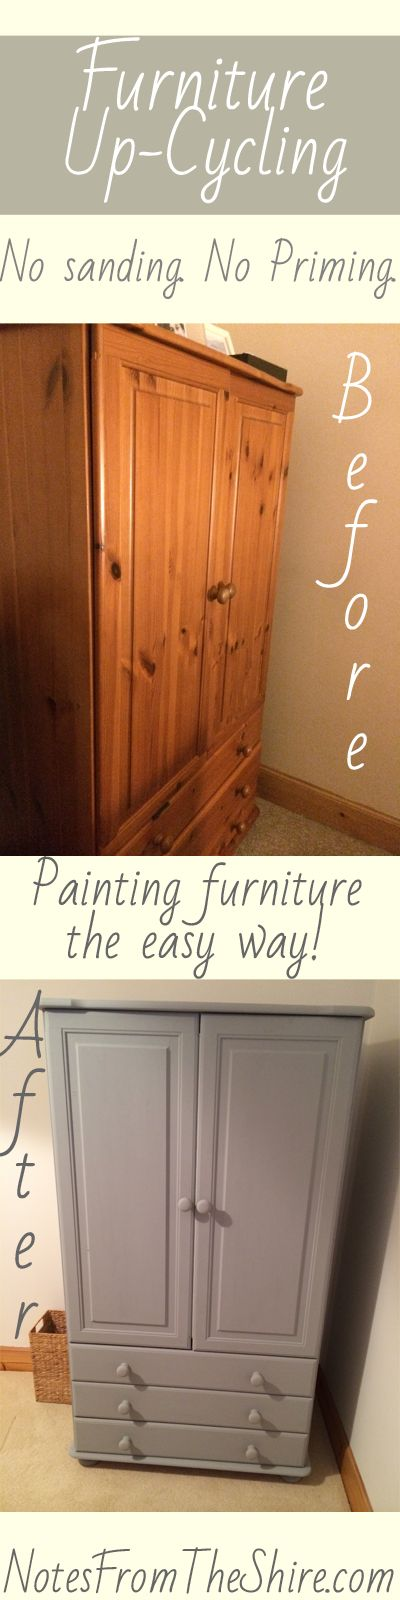 Painting furniture the easy way! Weekend project, refurbishing an old wardrobe #Upcycling furniture #PaintingFurniture | NotesFromTheShire.com